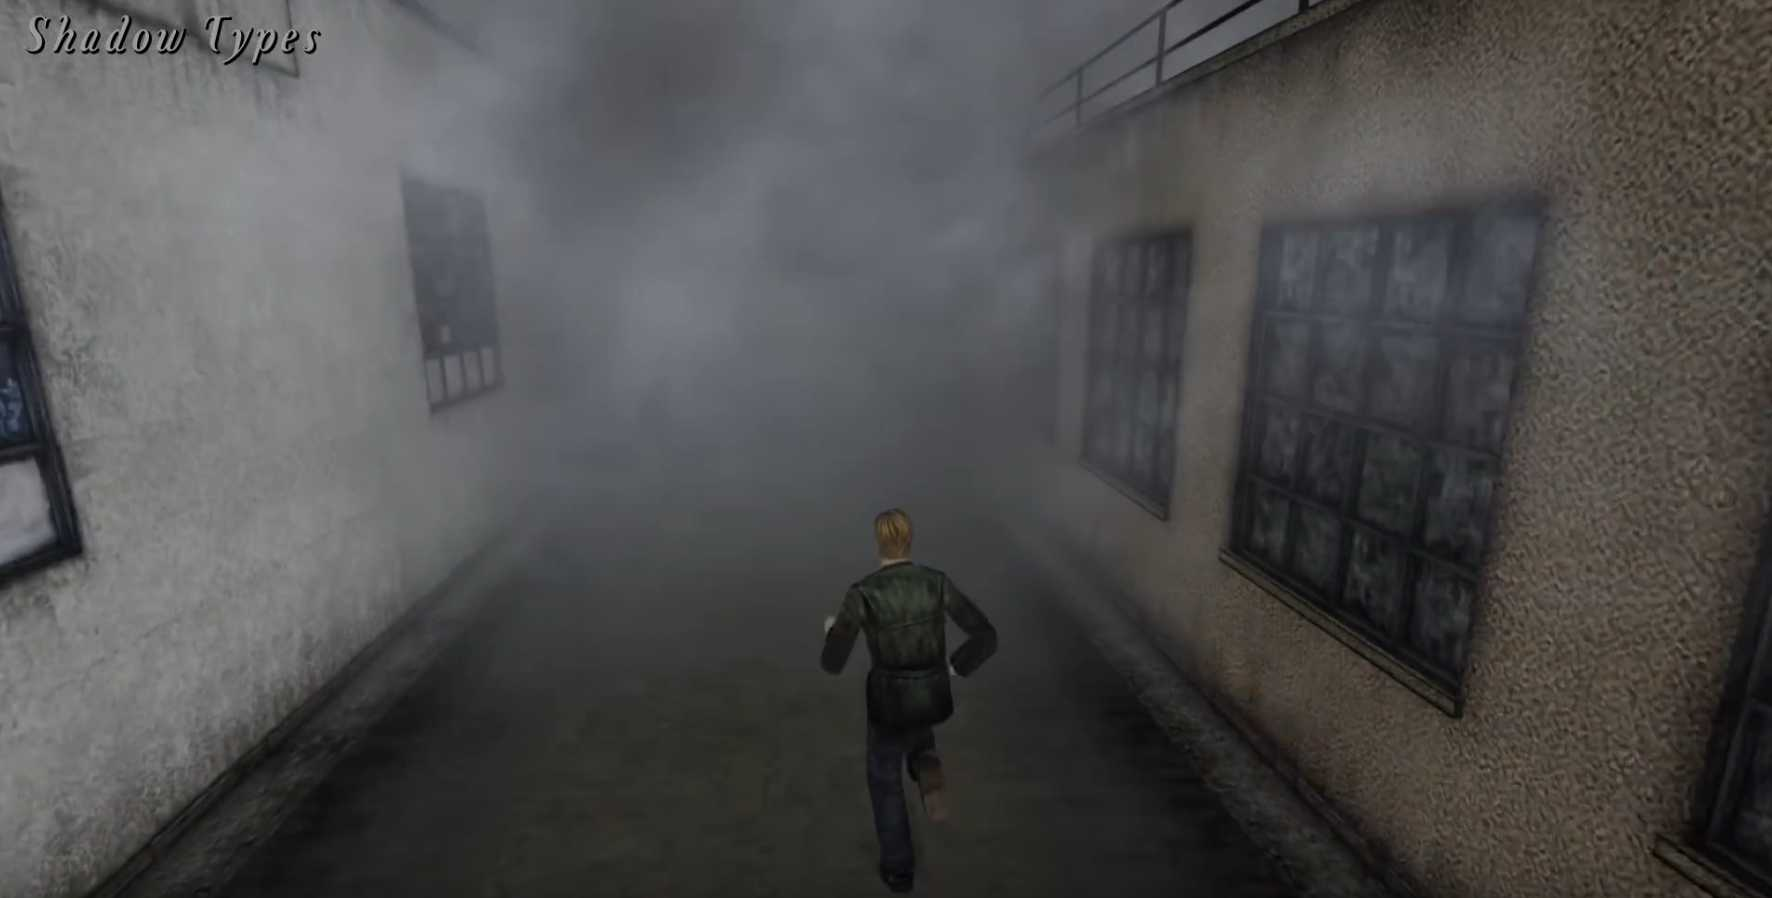 A New Silent Hill Game Is Possibly Being Developed By Kojima Productions, According To One Source